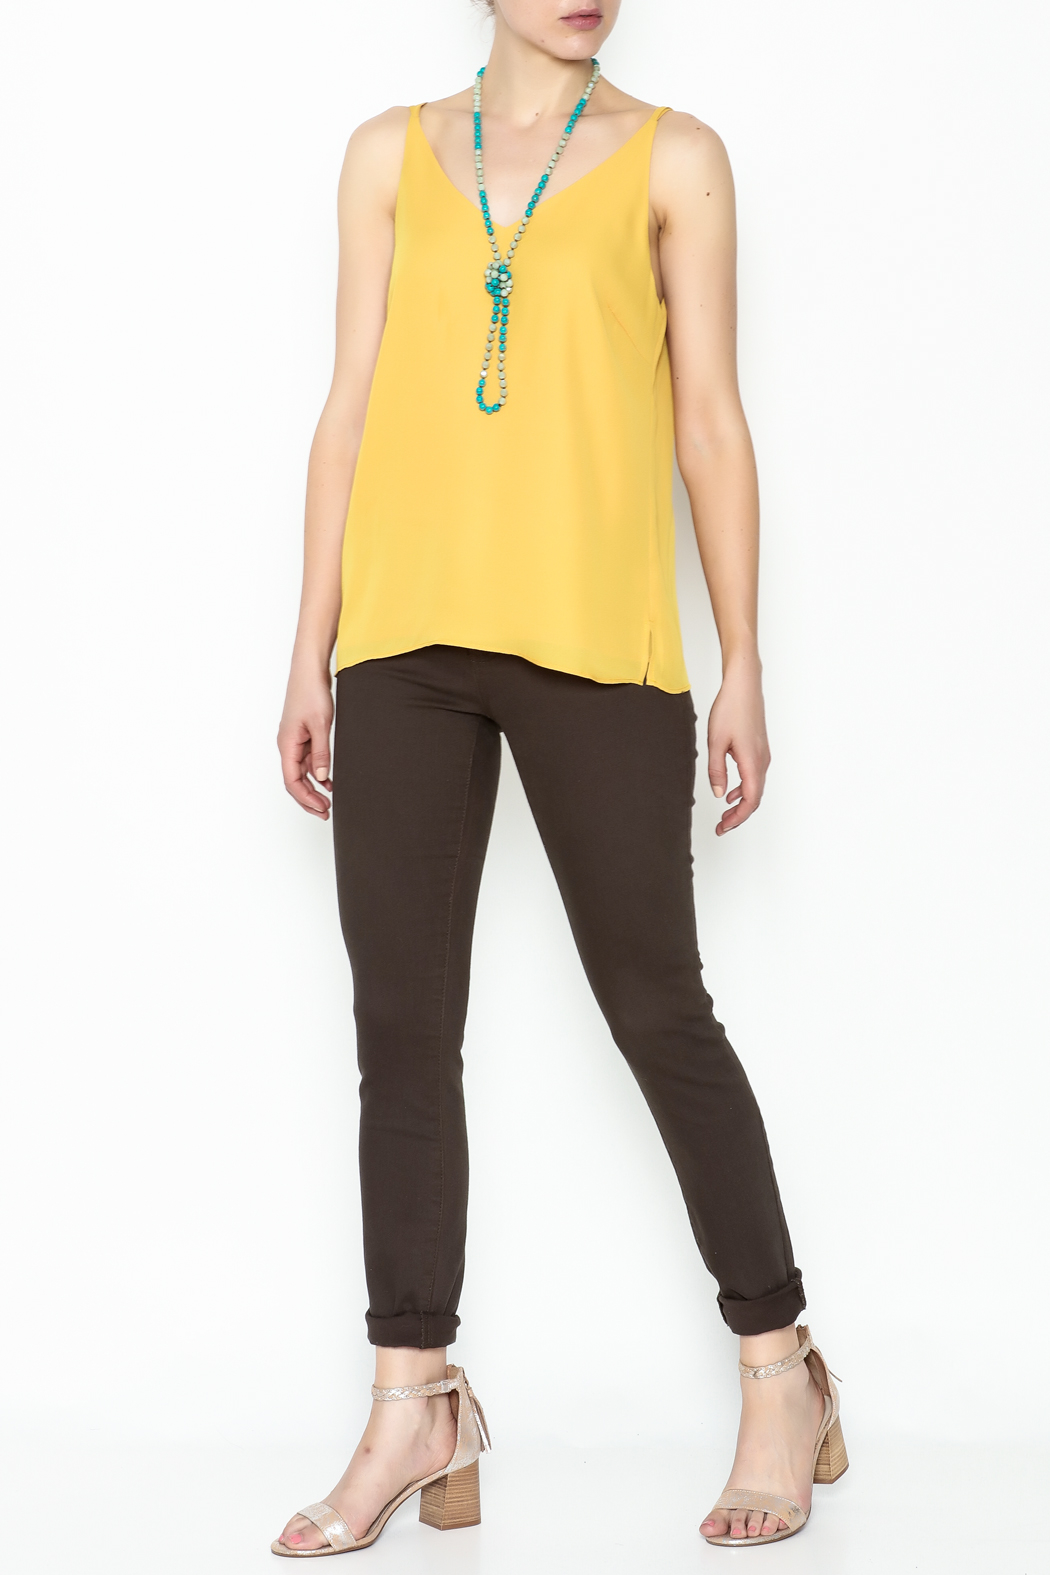 HYFVE Double Strap Top - Side Cropped Image